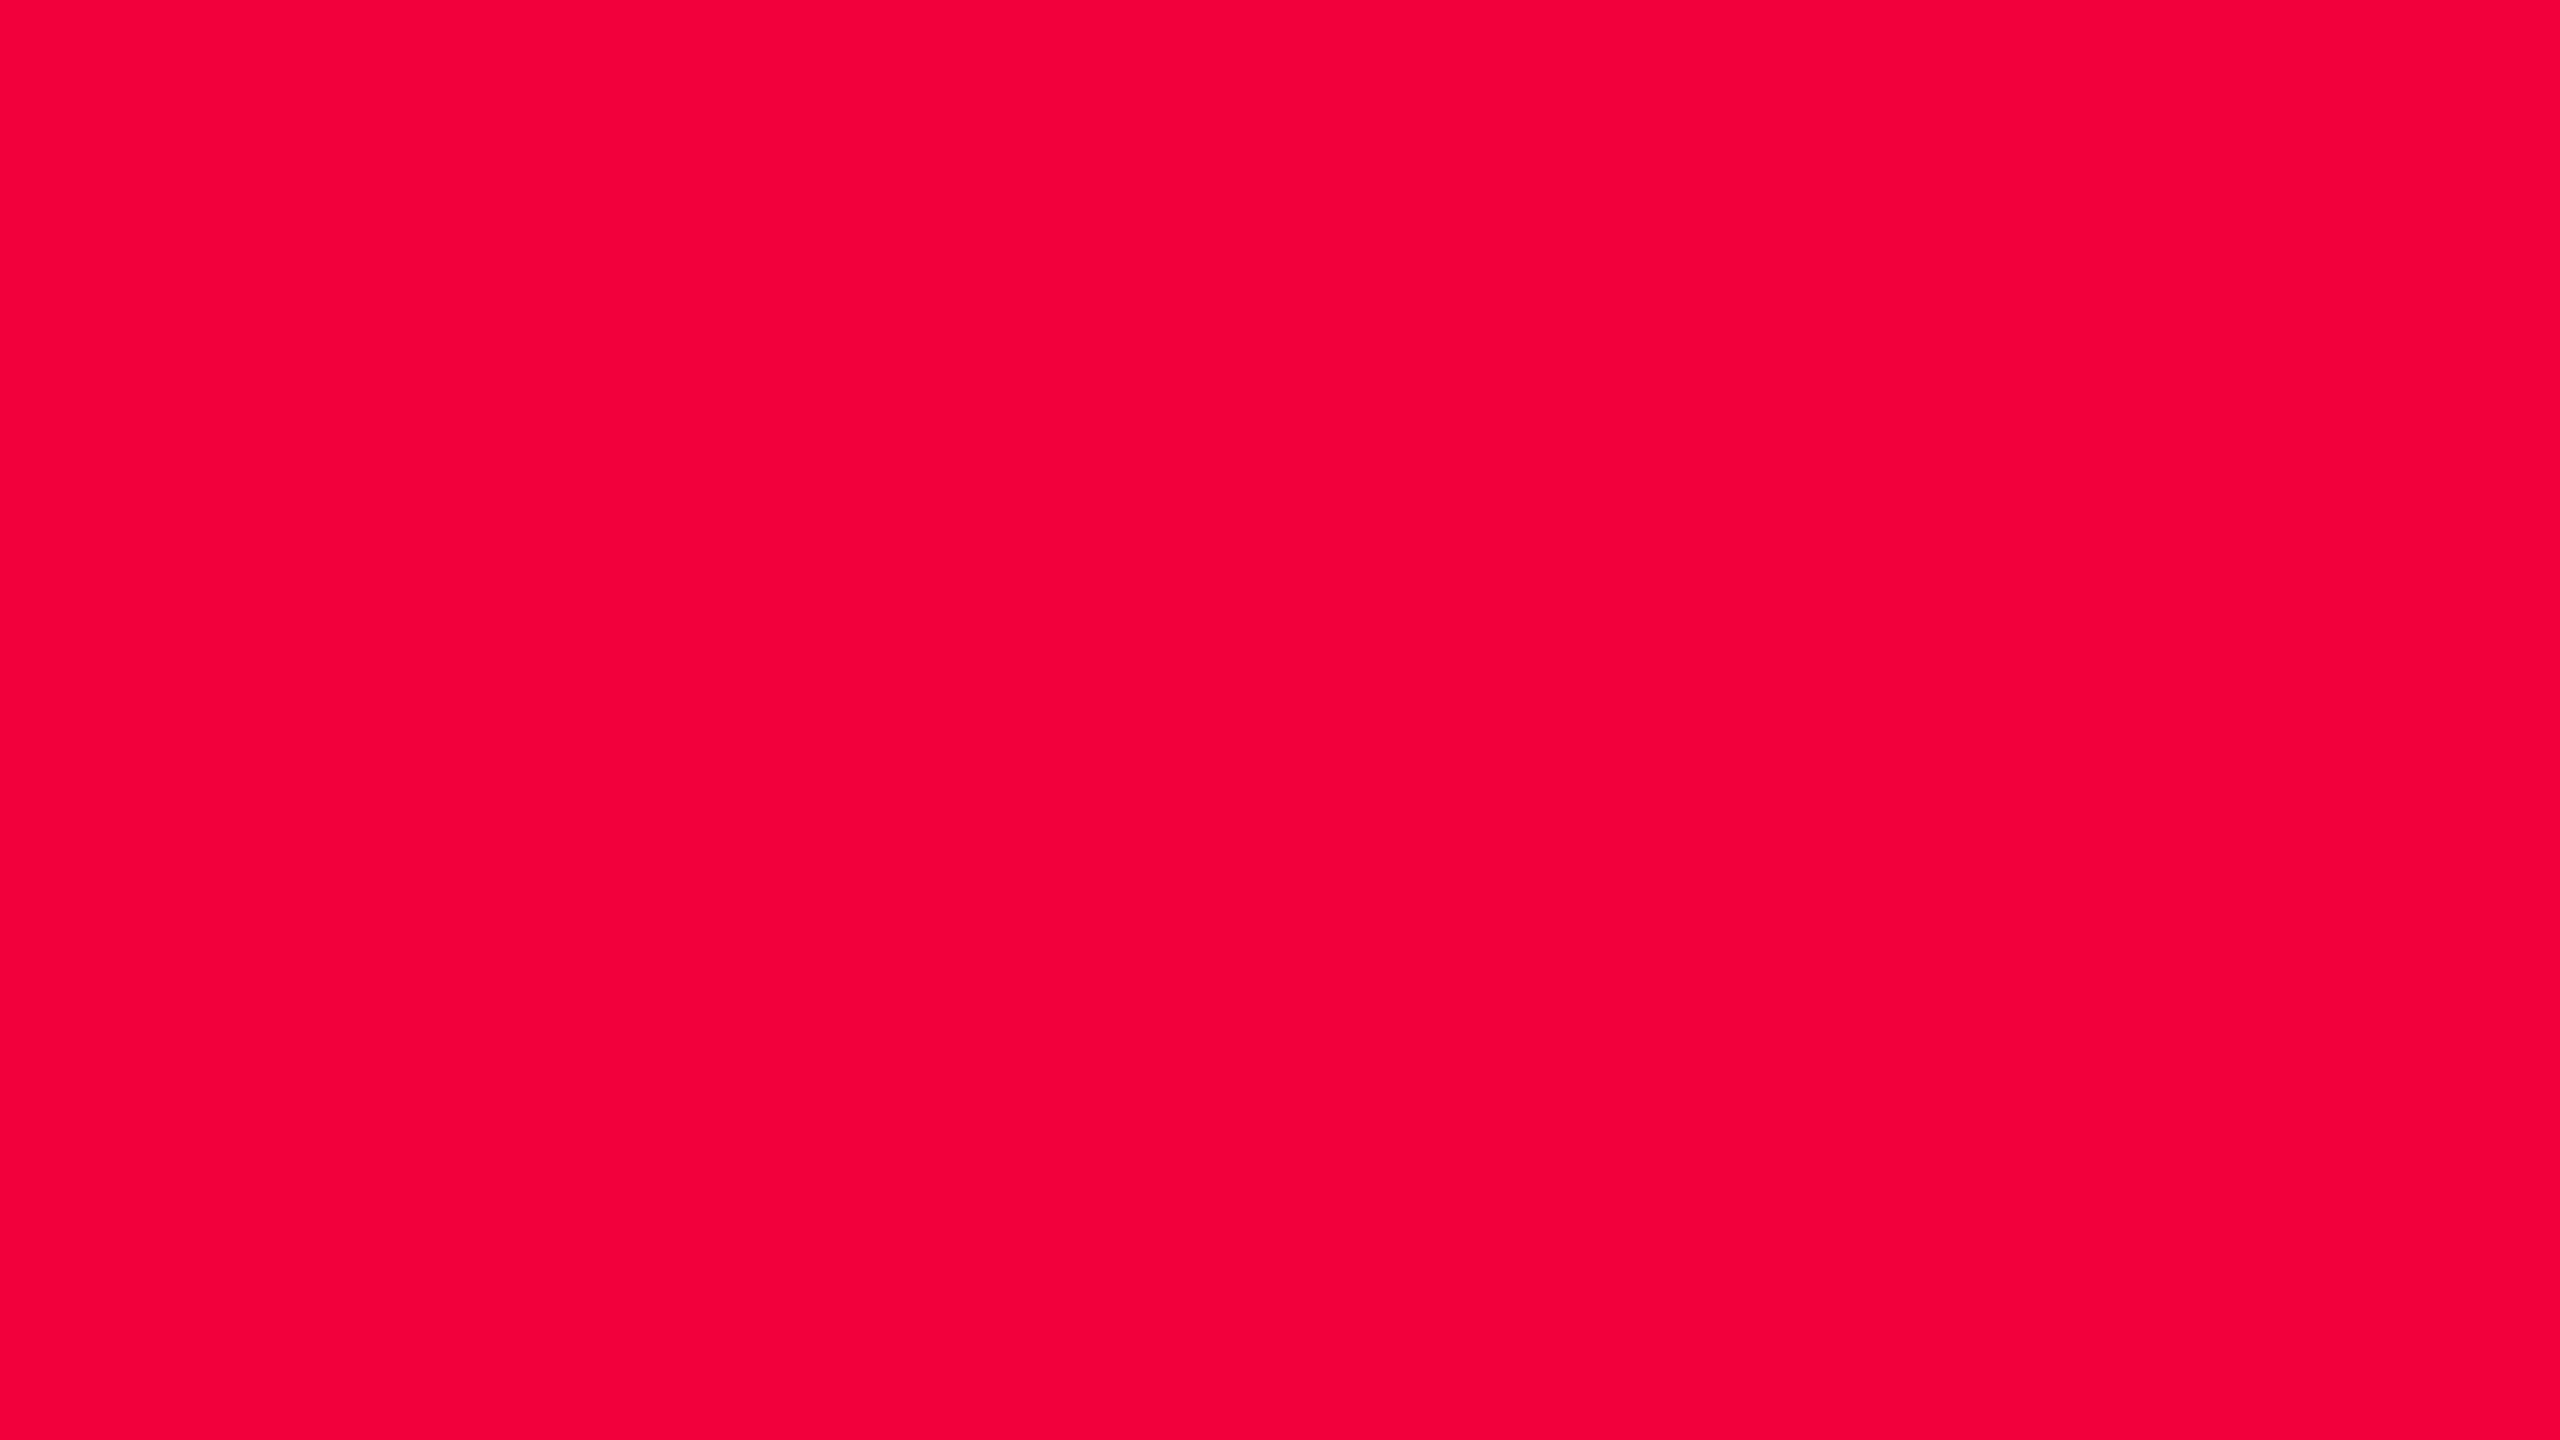 2560x1440 Red Munsell Solid Color Background